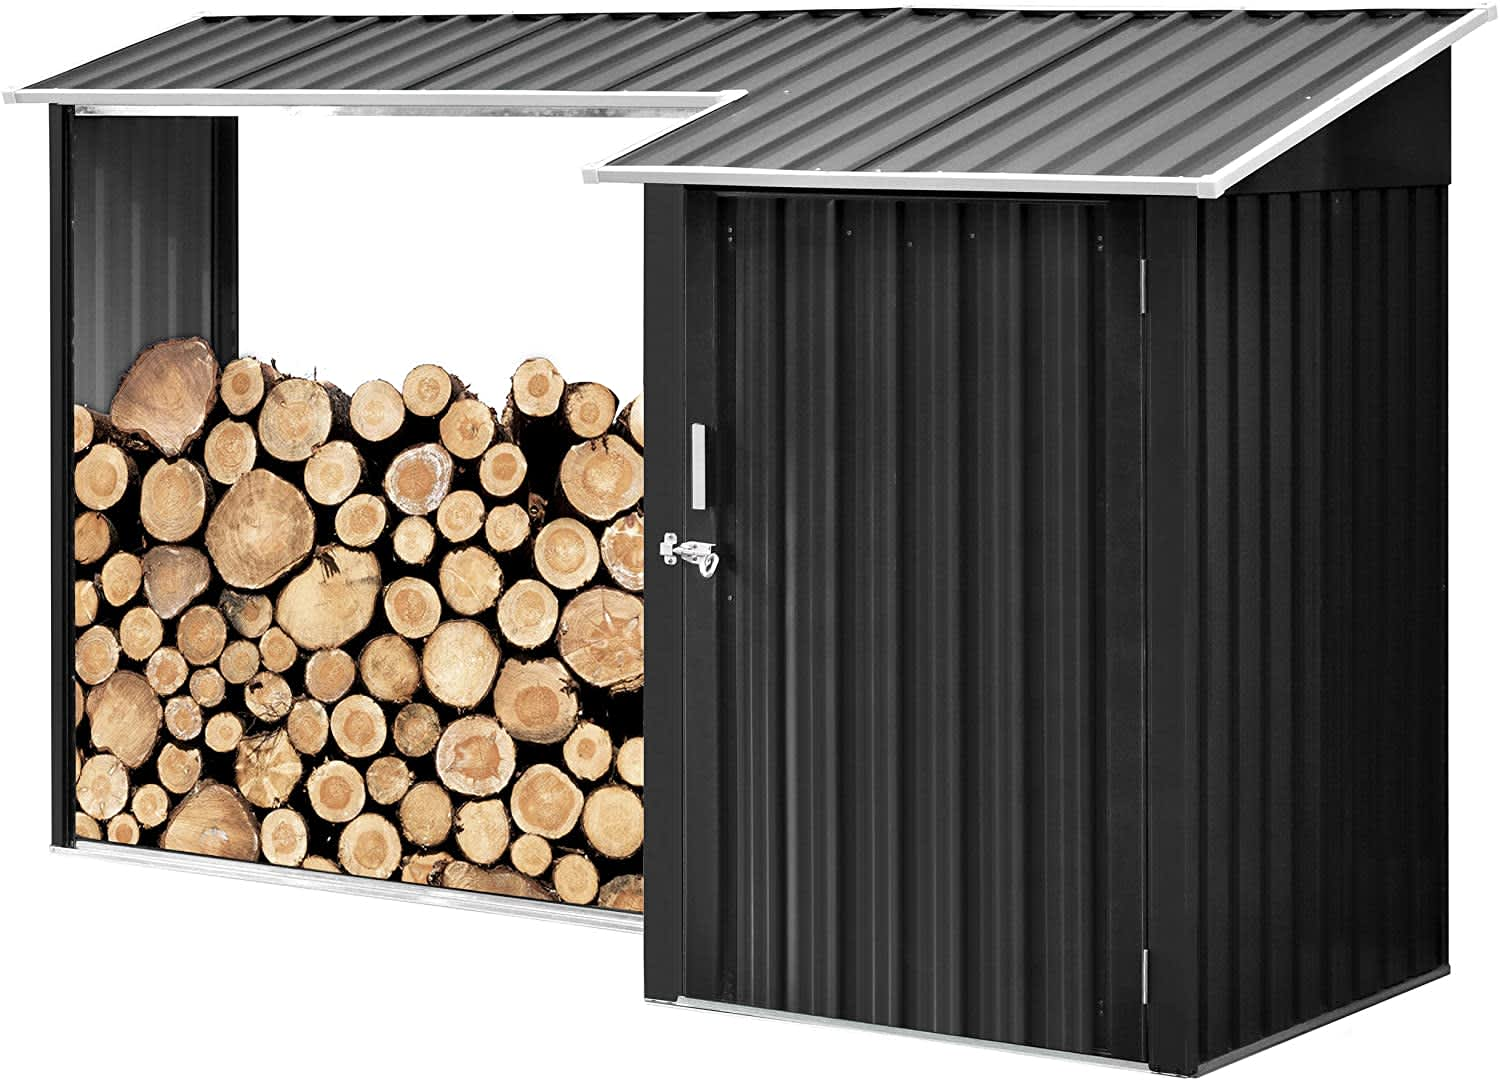 Hanover Shed with Firewood Storage